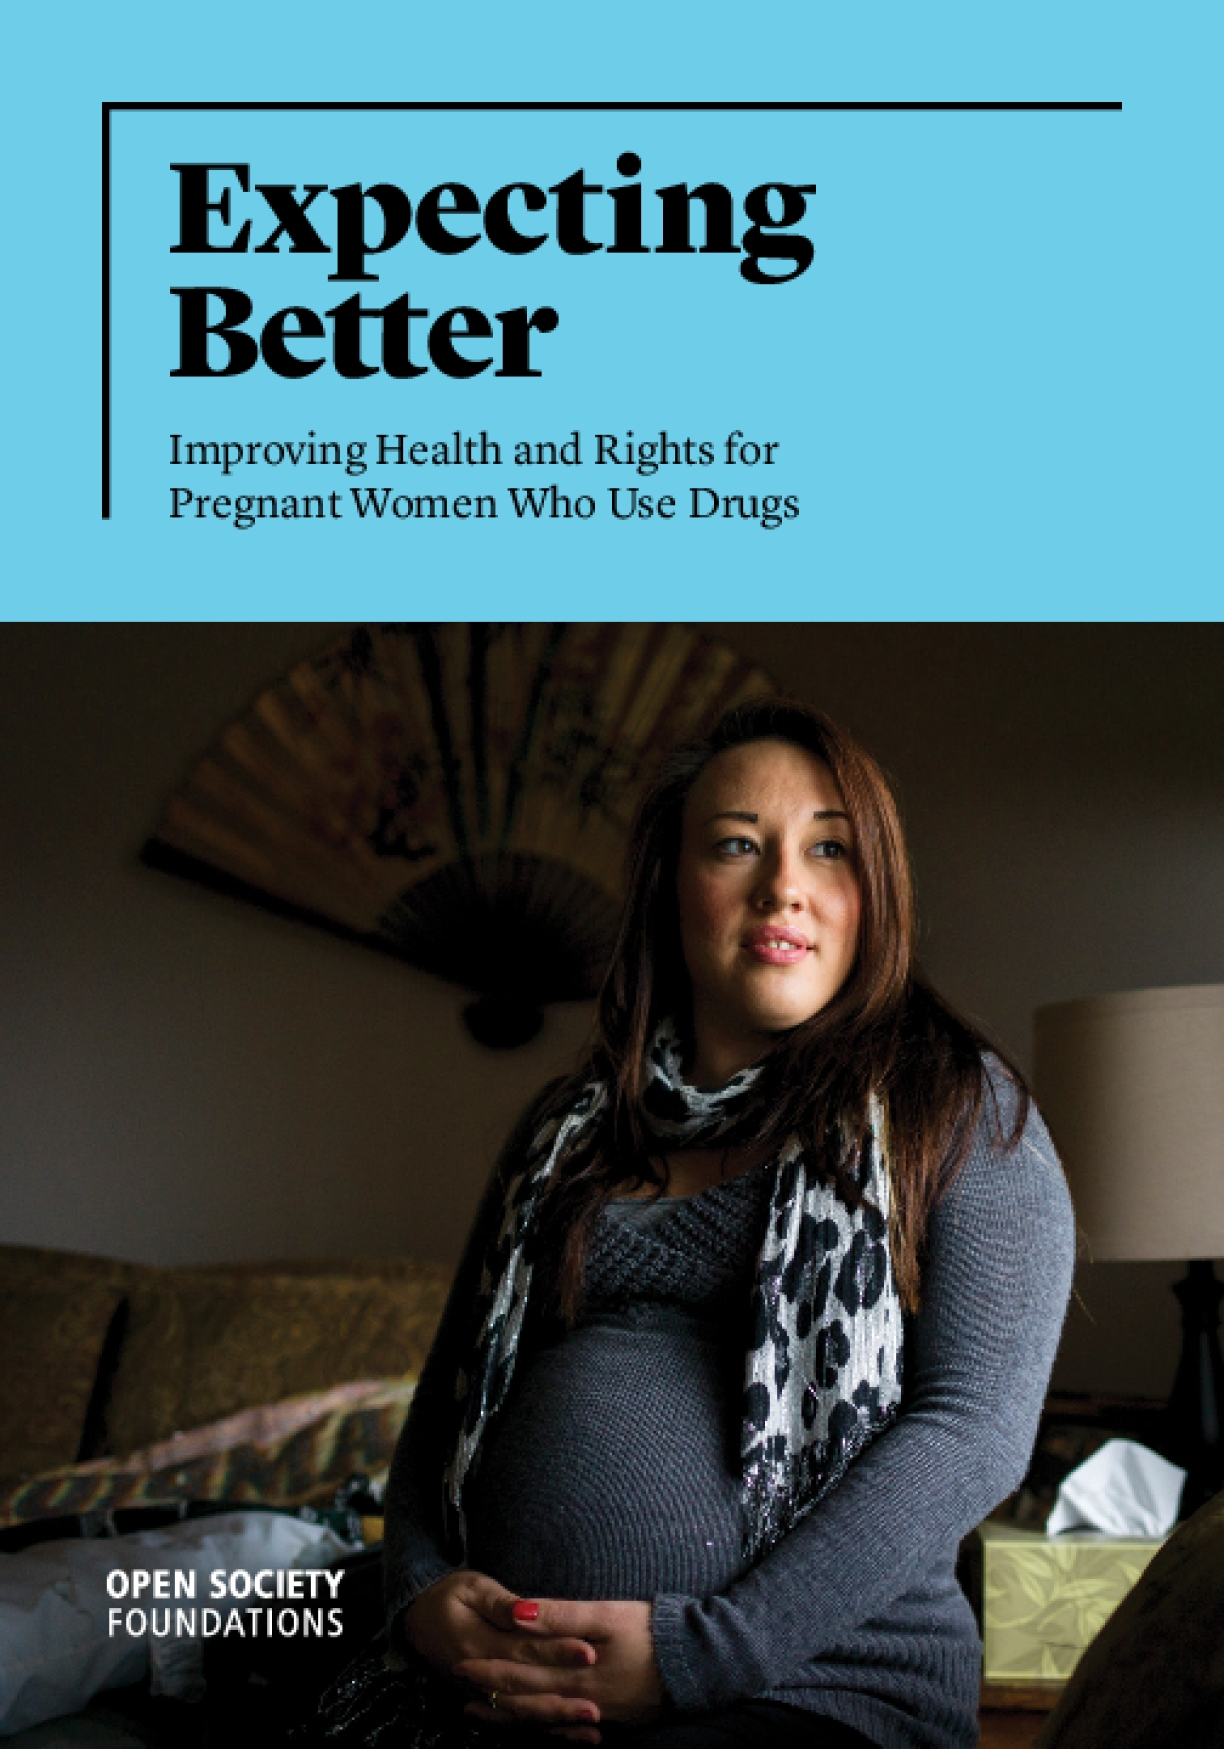 Expecting Better: Improving Health and Rights for Pregnant Women Who Use Drugs